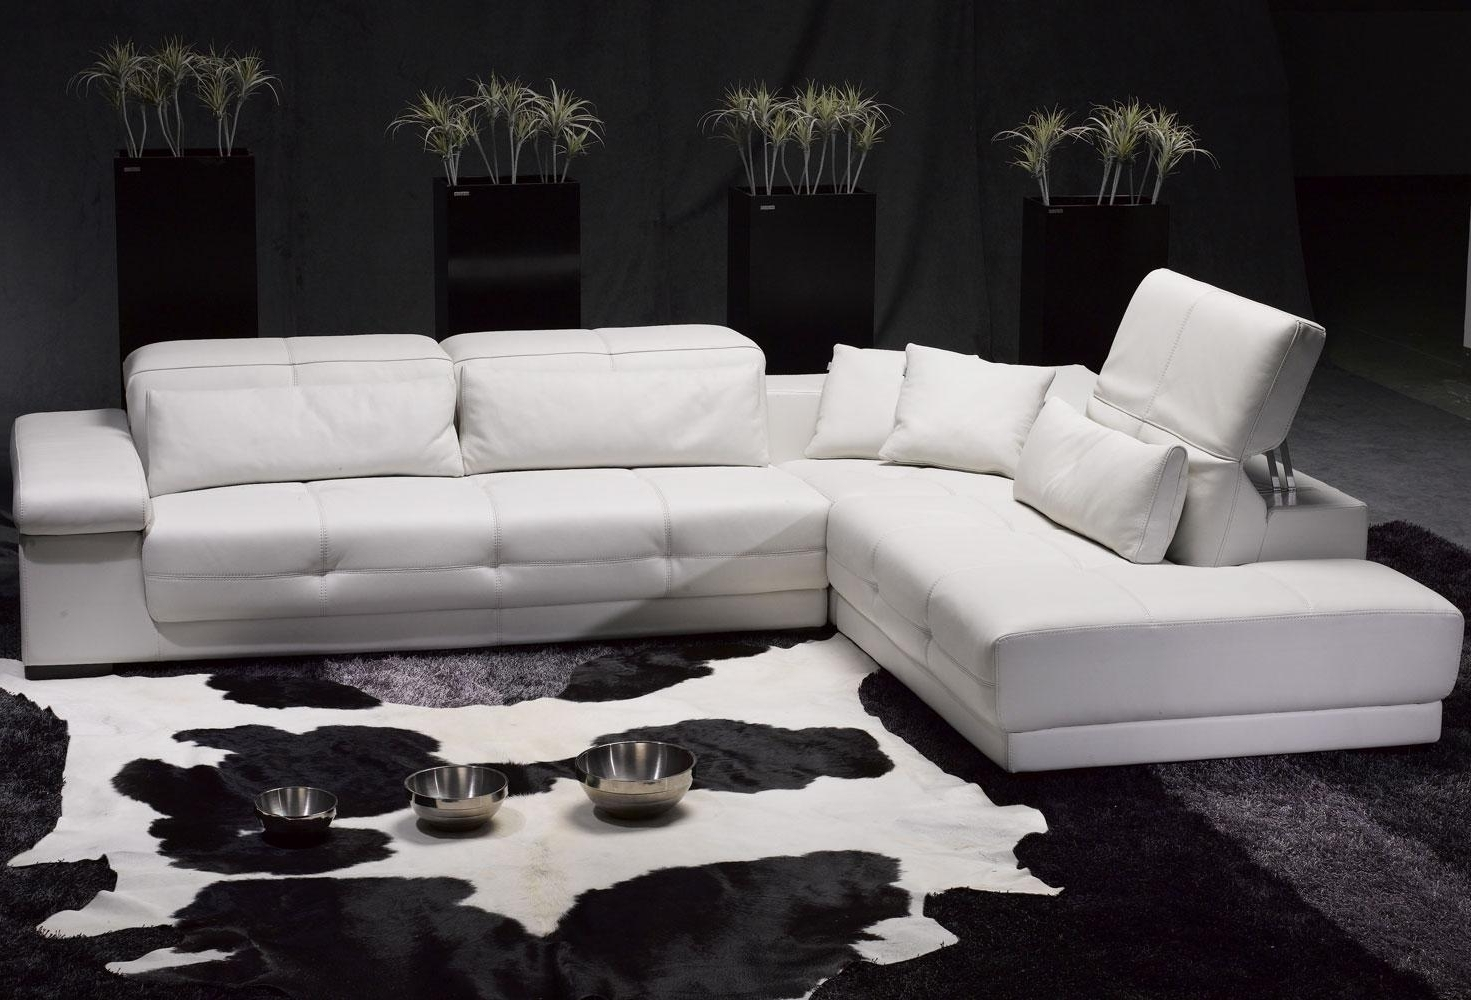 Fancy White Sectional Sofa 74 In Office Sofa Ideas With White With Well Known White Sectional Sofas (View 5 of 15)